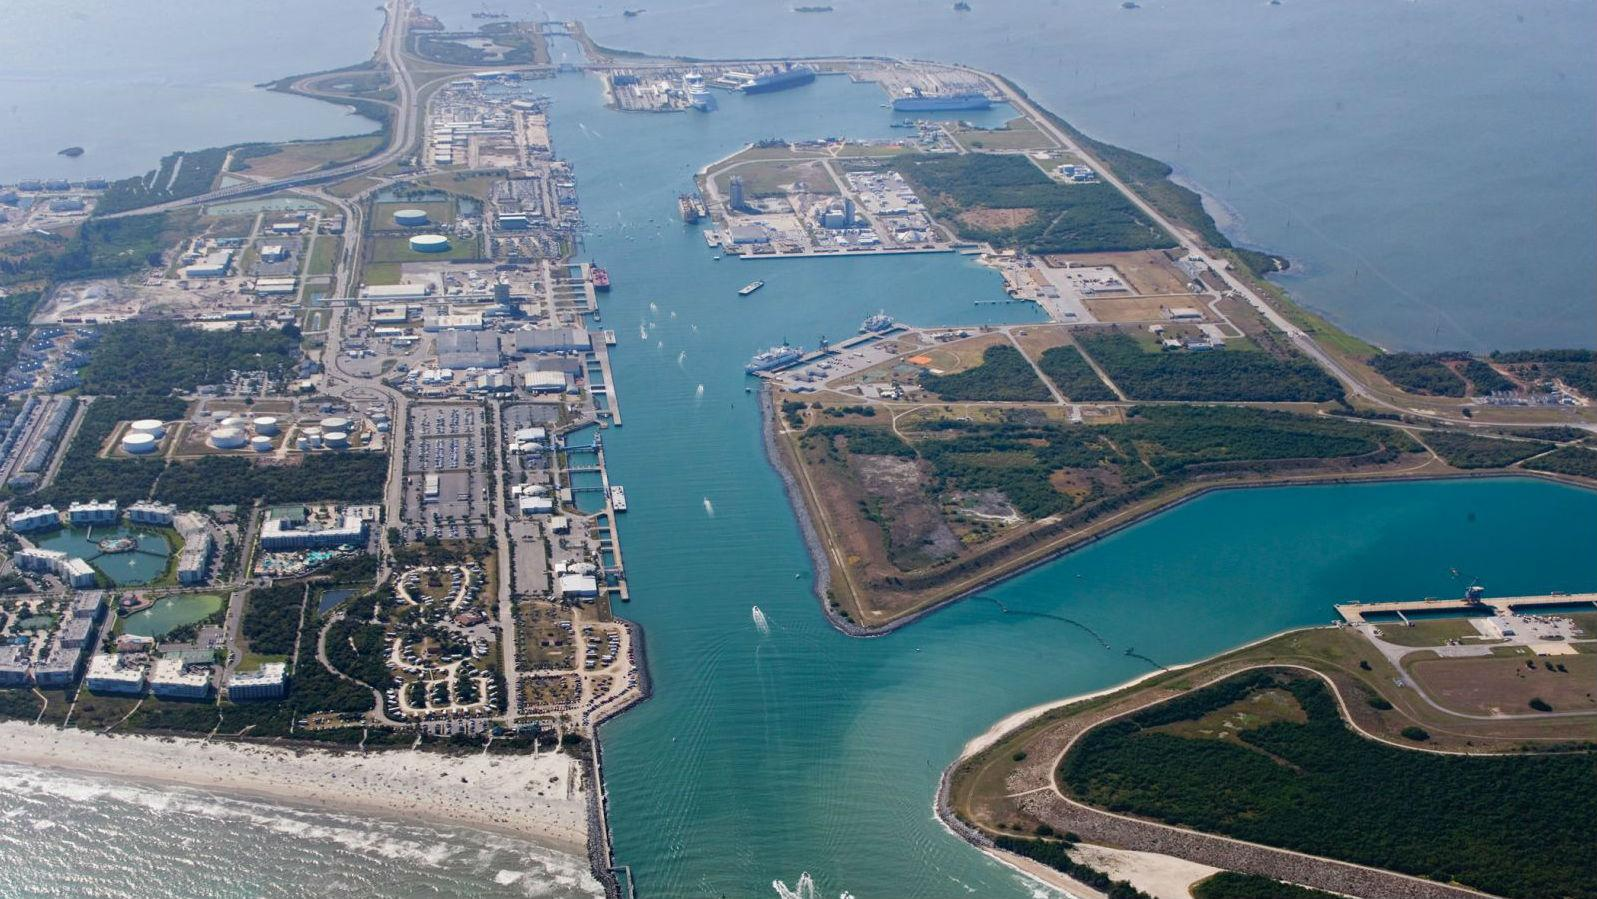 Canaveral port